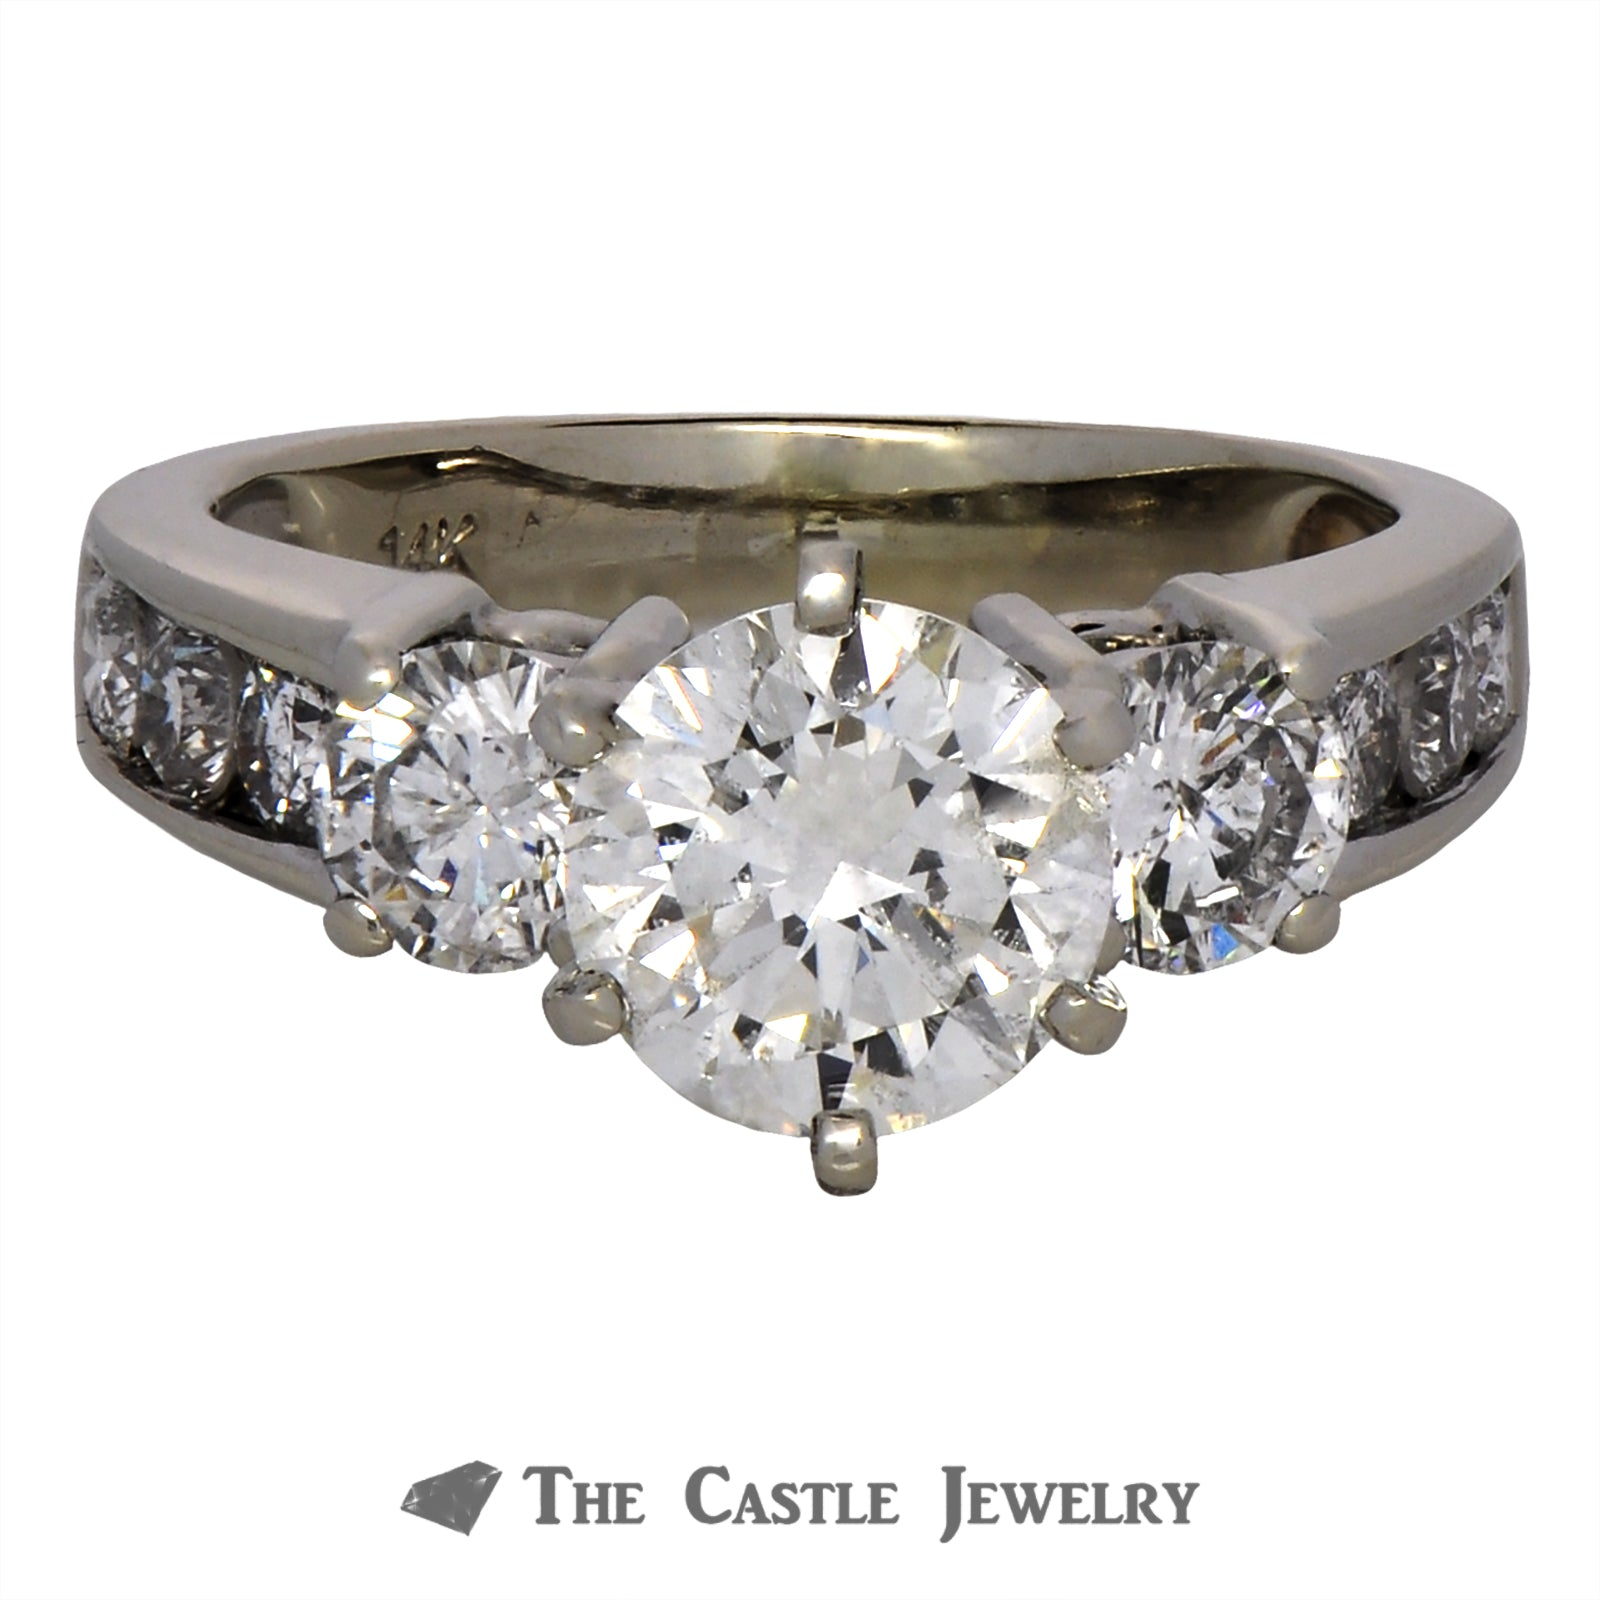 2.80cttw Round Brilliant Cut Diamond Engagement Ring in 14K White Gold